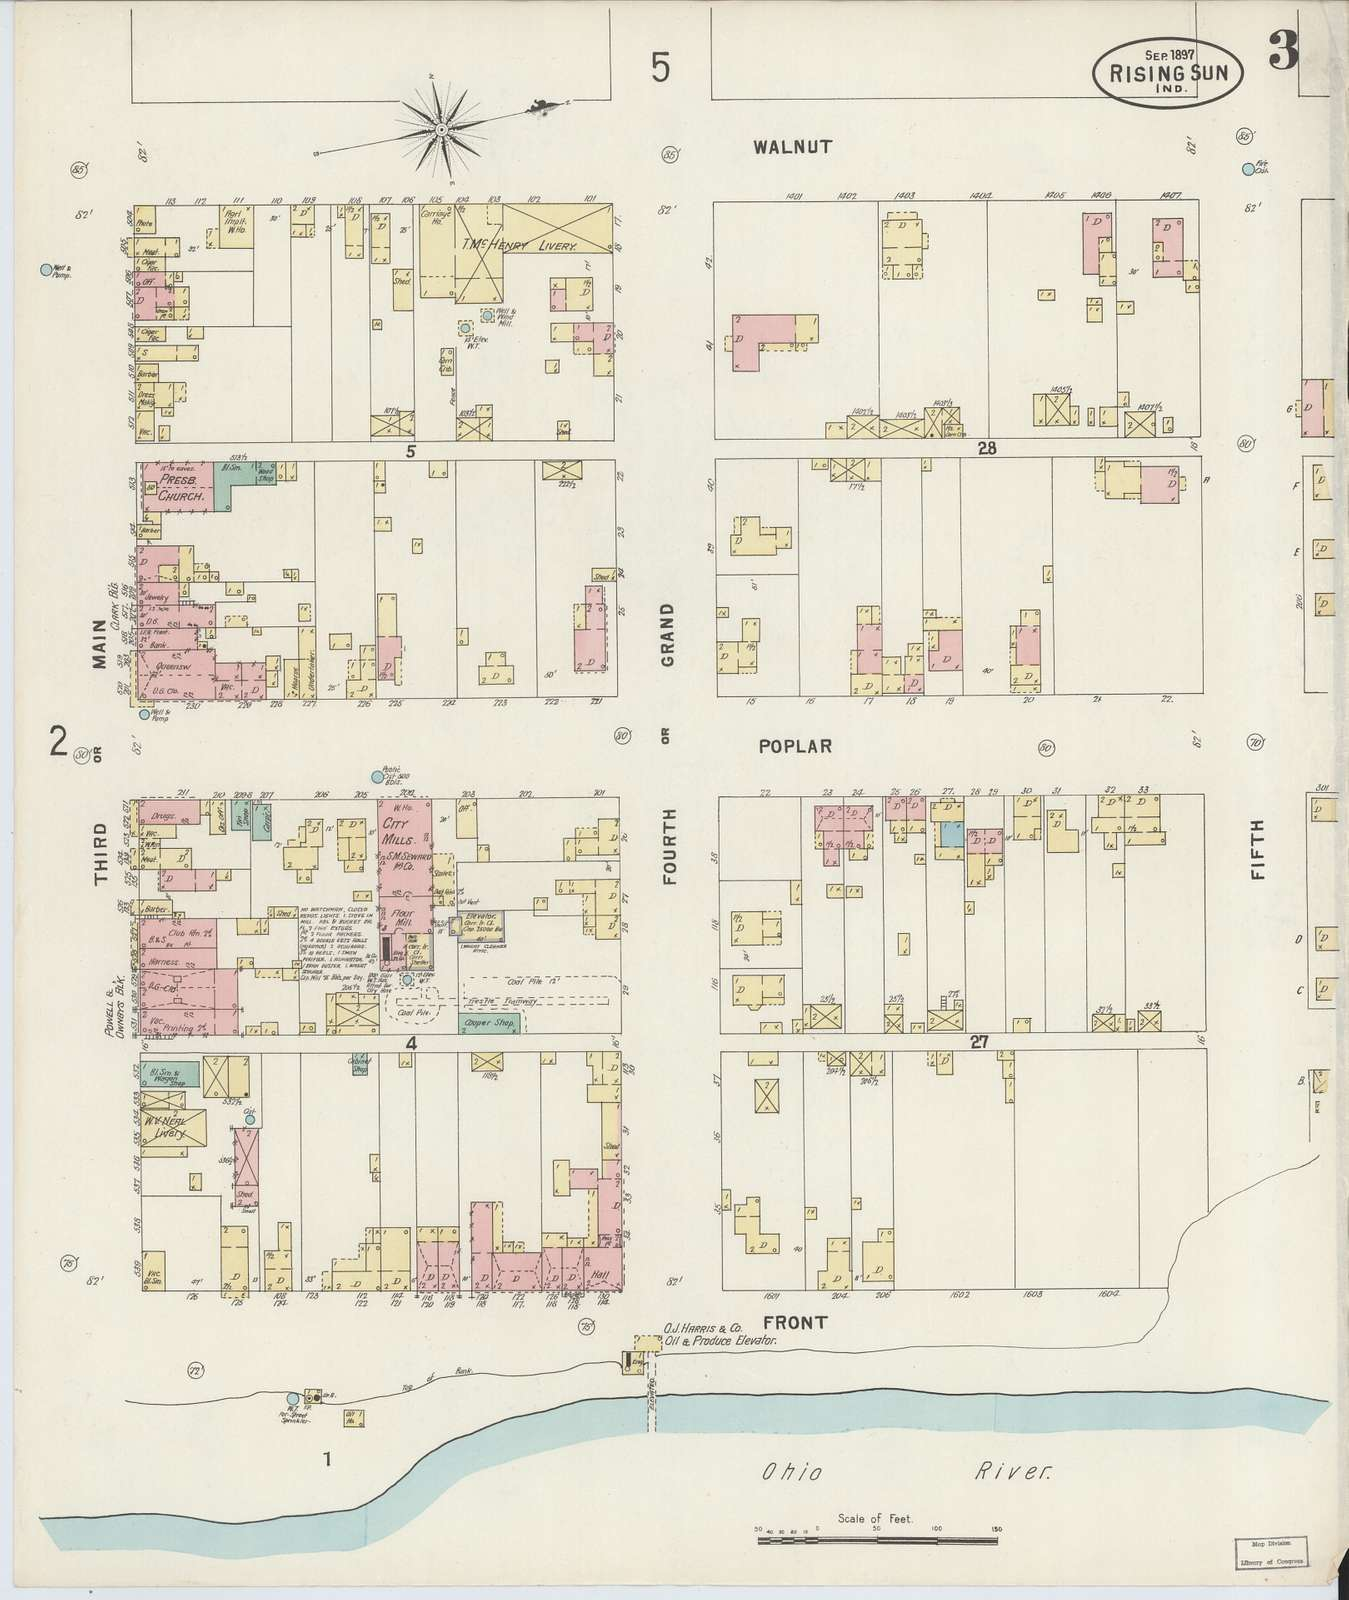 Sanborn Fire Insurance Map from Rising Sun, Ohio County, Indiana